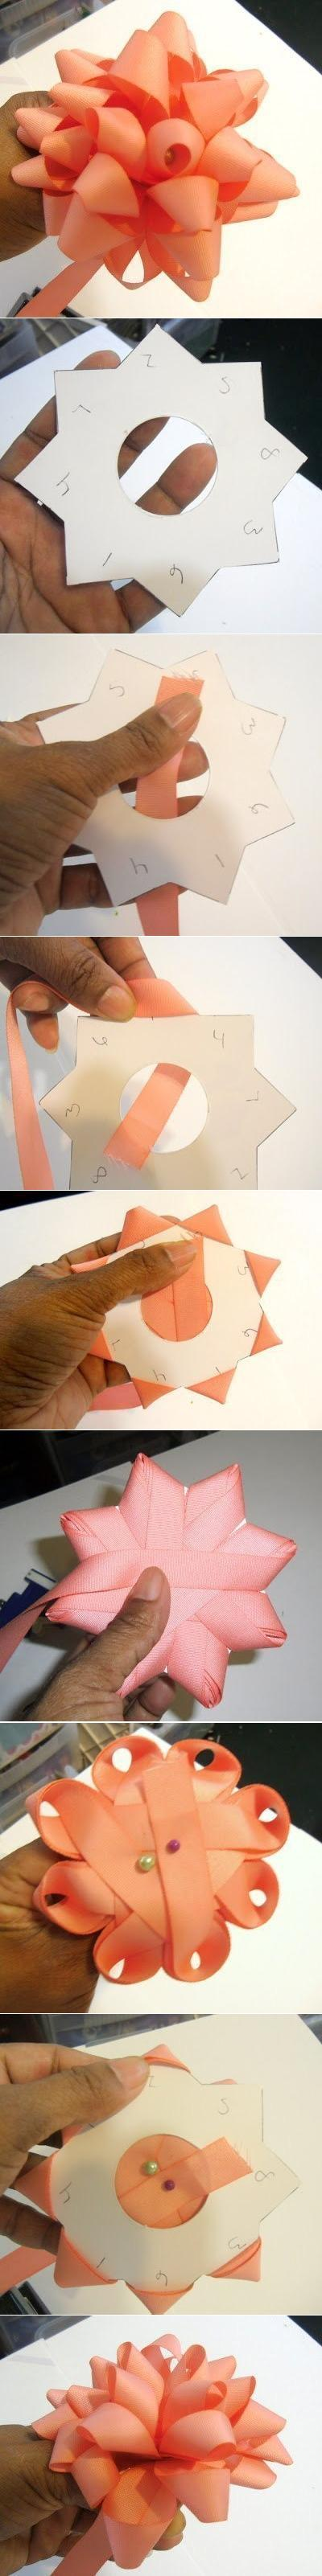 DIY Bow of Ribbon DIY Projects | UsefulDIY.com